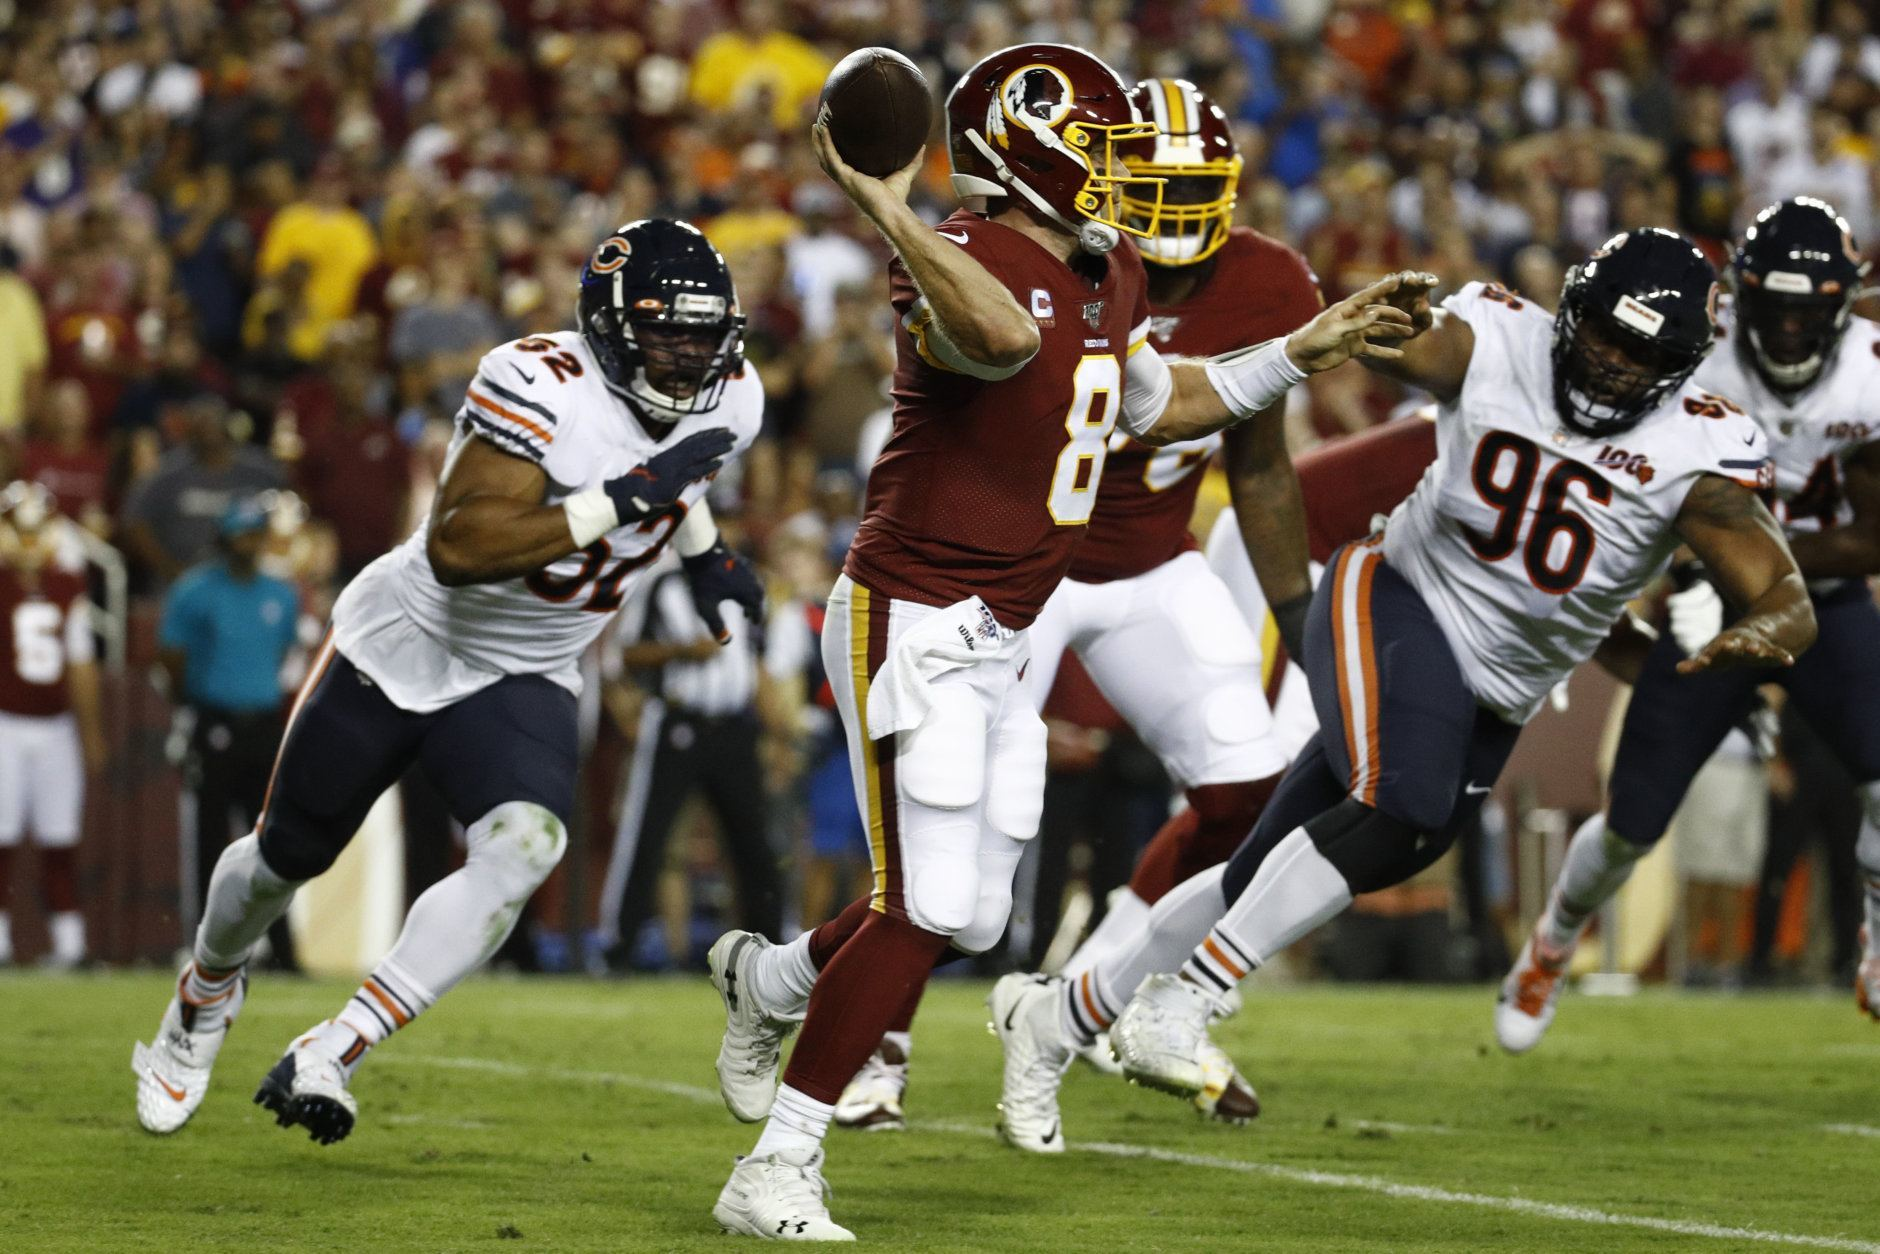 Washington Redskins quarterback Case Keenum (8) throws under pressure from Chicago Bears linebacker Khalil Mack (52) and tackle Akiem Hicks (96) during the first half of an NFL football game Monday, Sept. 23, 2019, in Landover, Md. (AP Photo/Patrick Semansky)